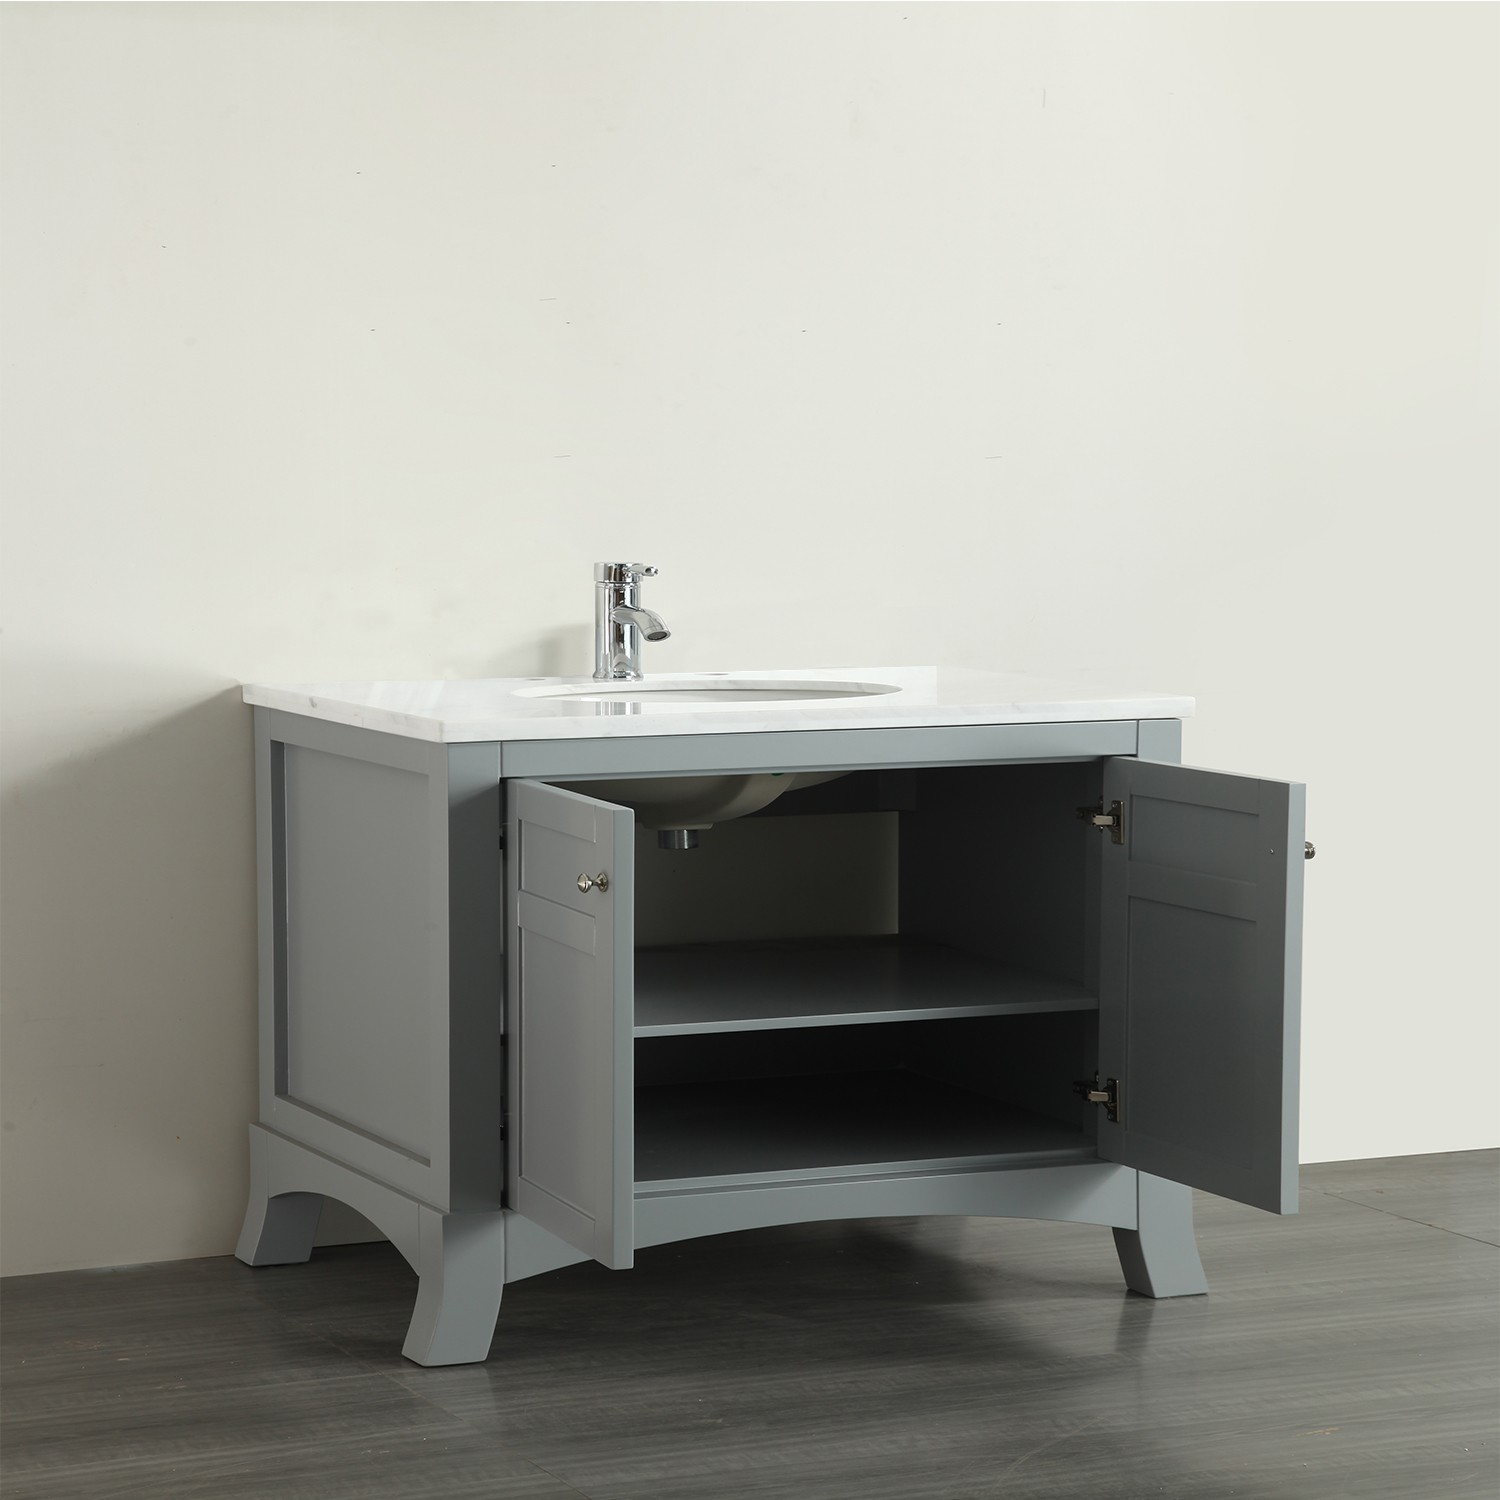 Eviva new york 30 grey bathroom vanity with white marble carrera counter top sink decors us for Gray bathroom vanity with top